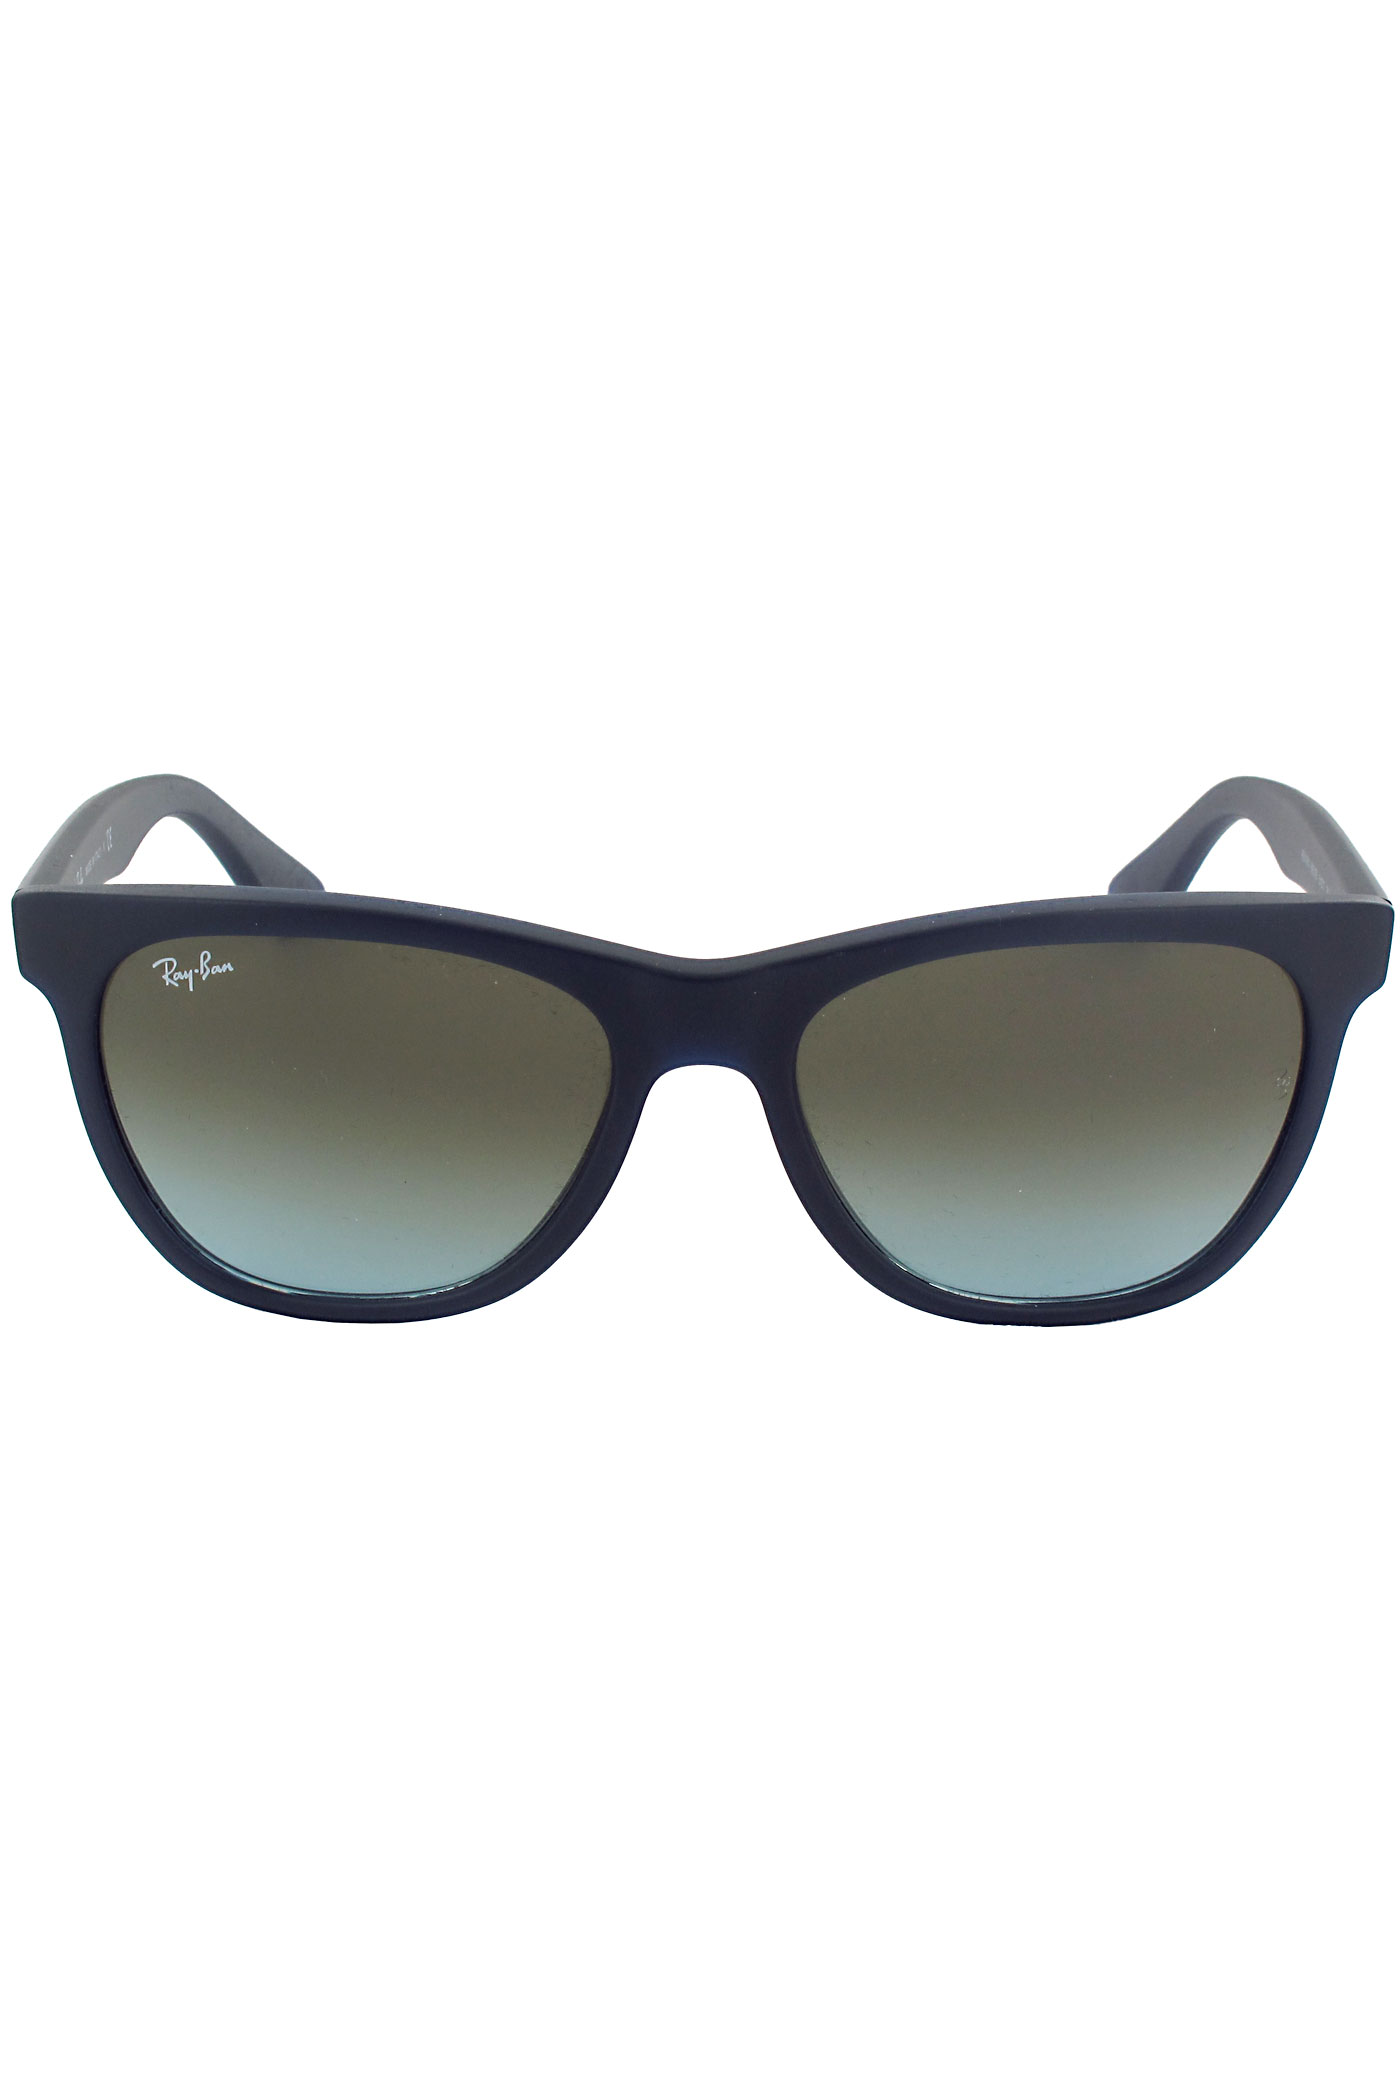 91262a1ff7 Luxottica Ray Ban Clubmaster Oversized Blue « Heritage Malta